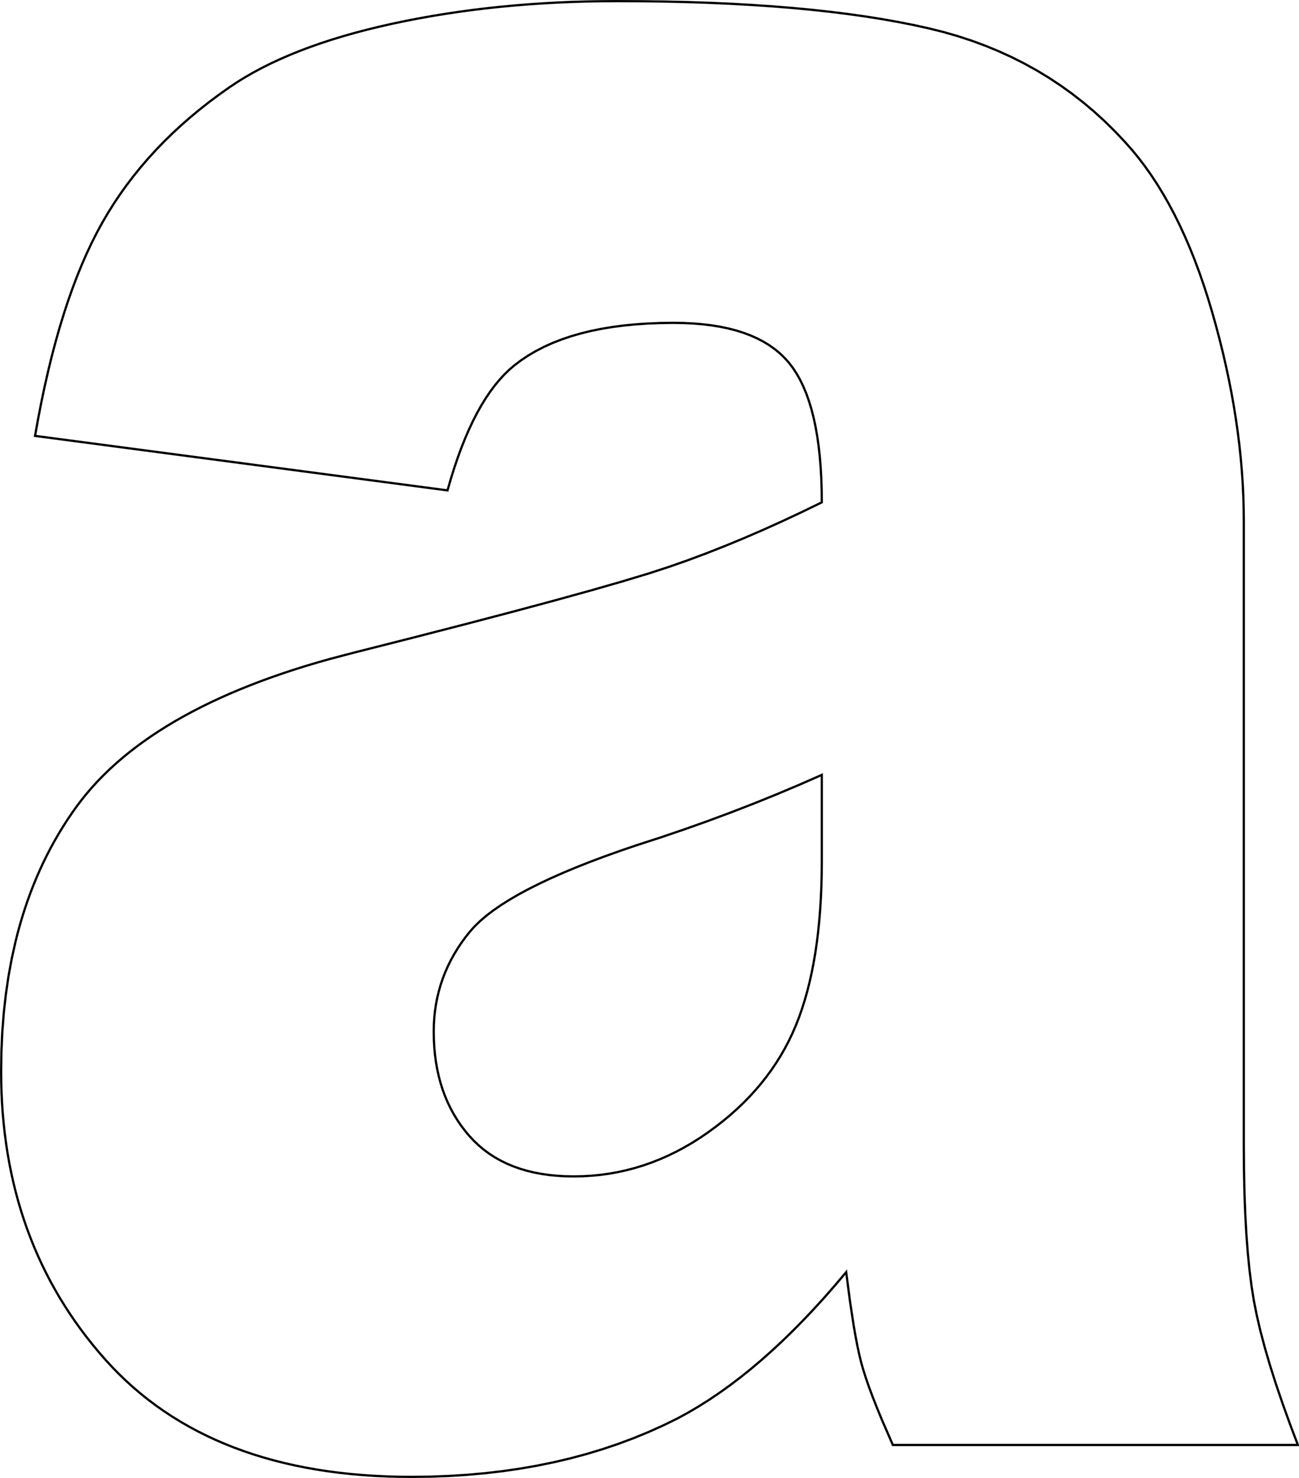 Hilaire image for free printable lower case letters